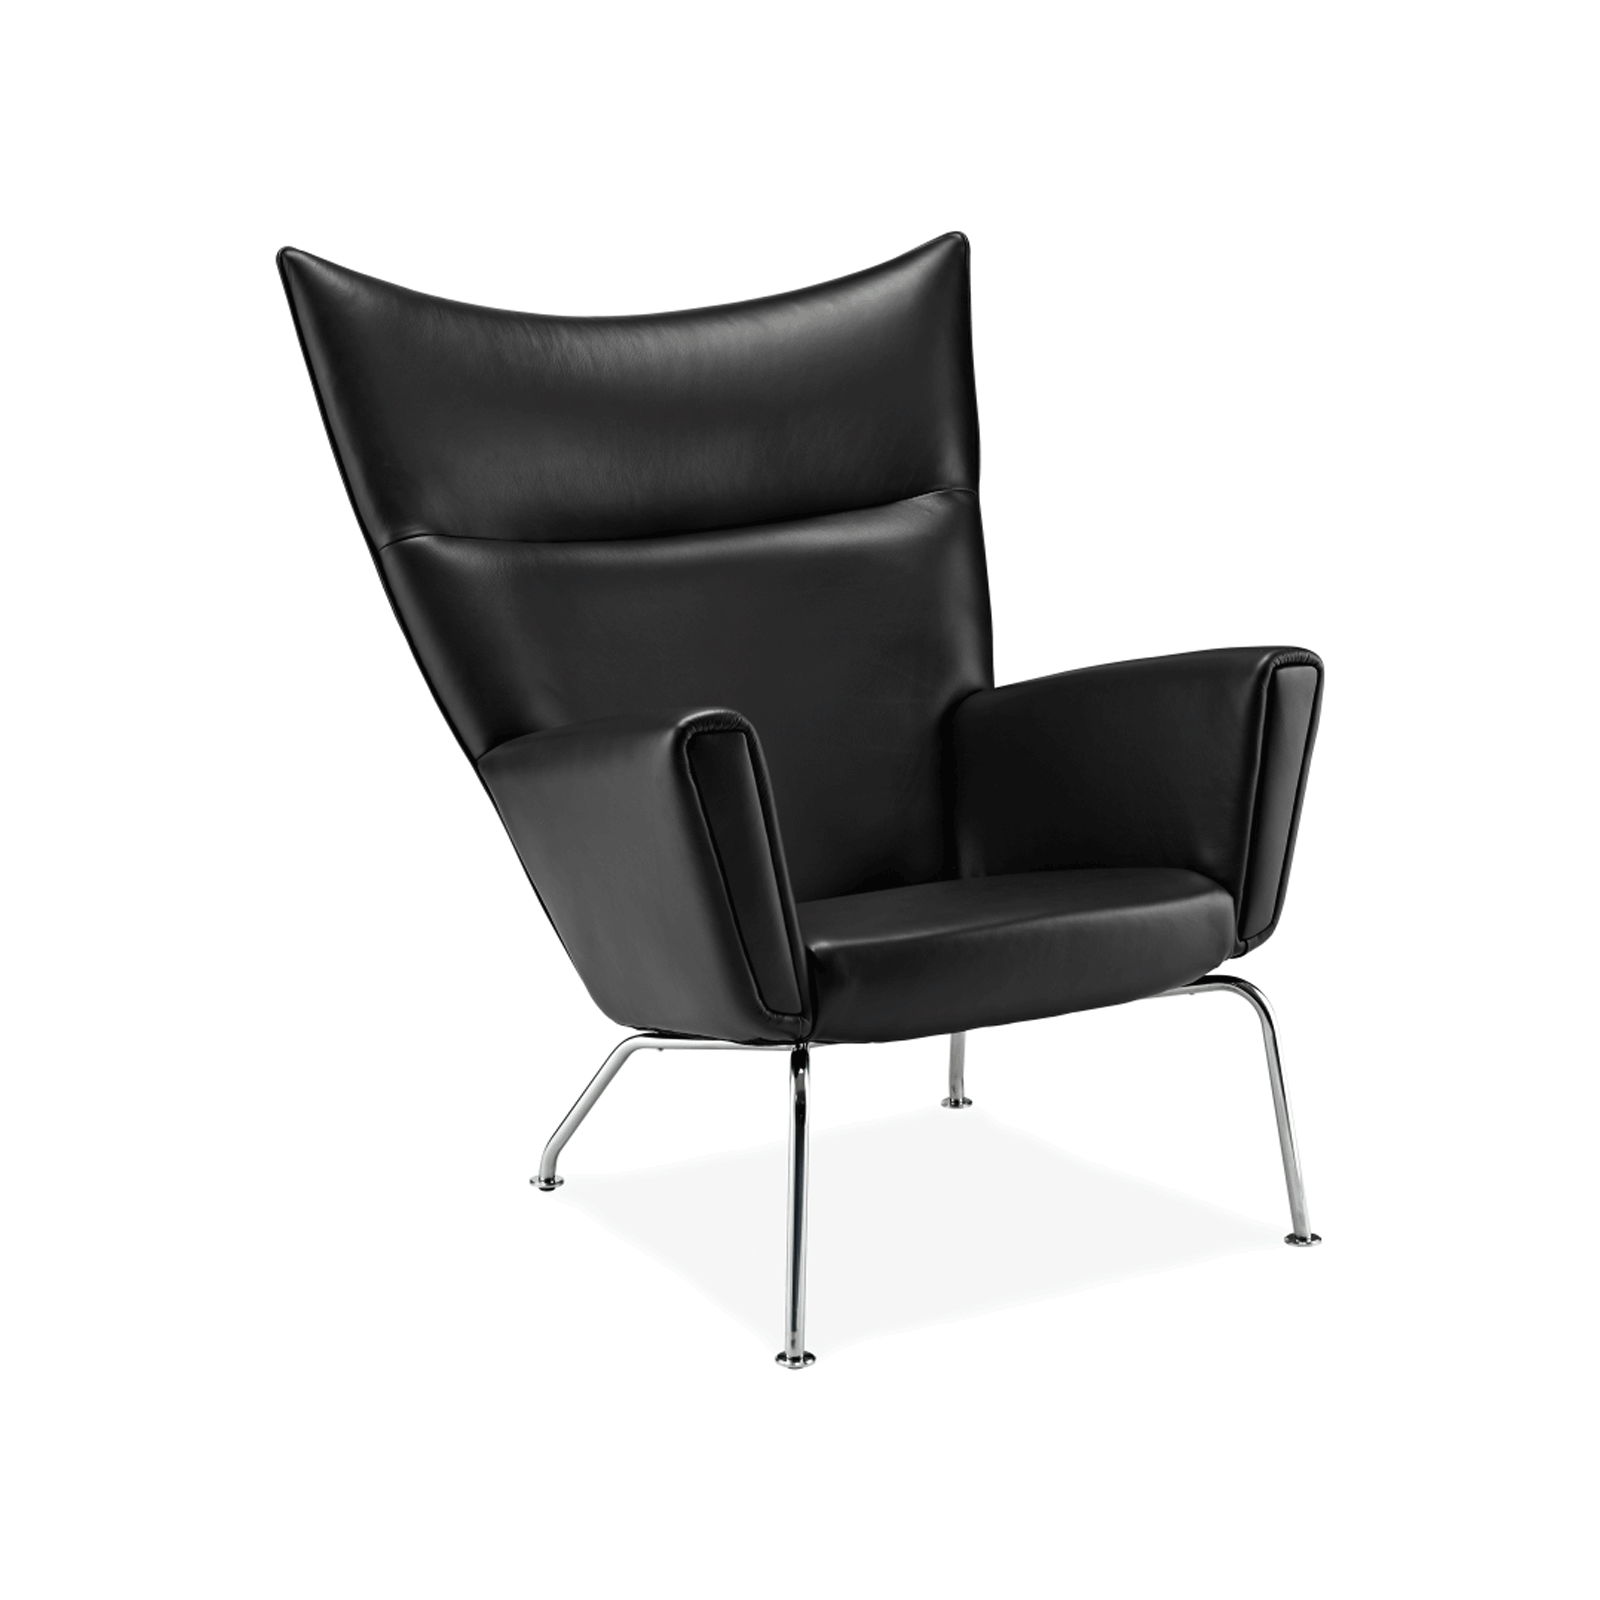 A Perfect Wing Chair with an Attractive Design